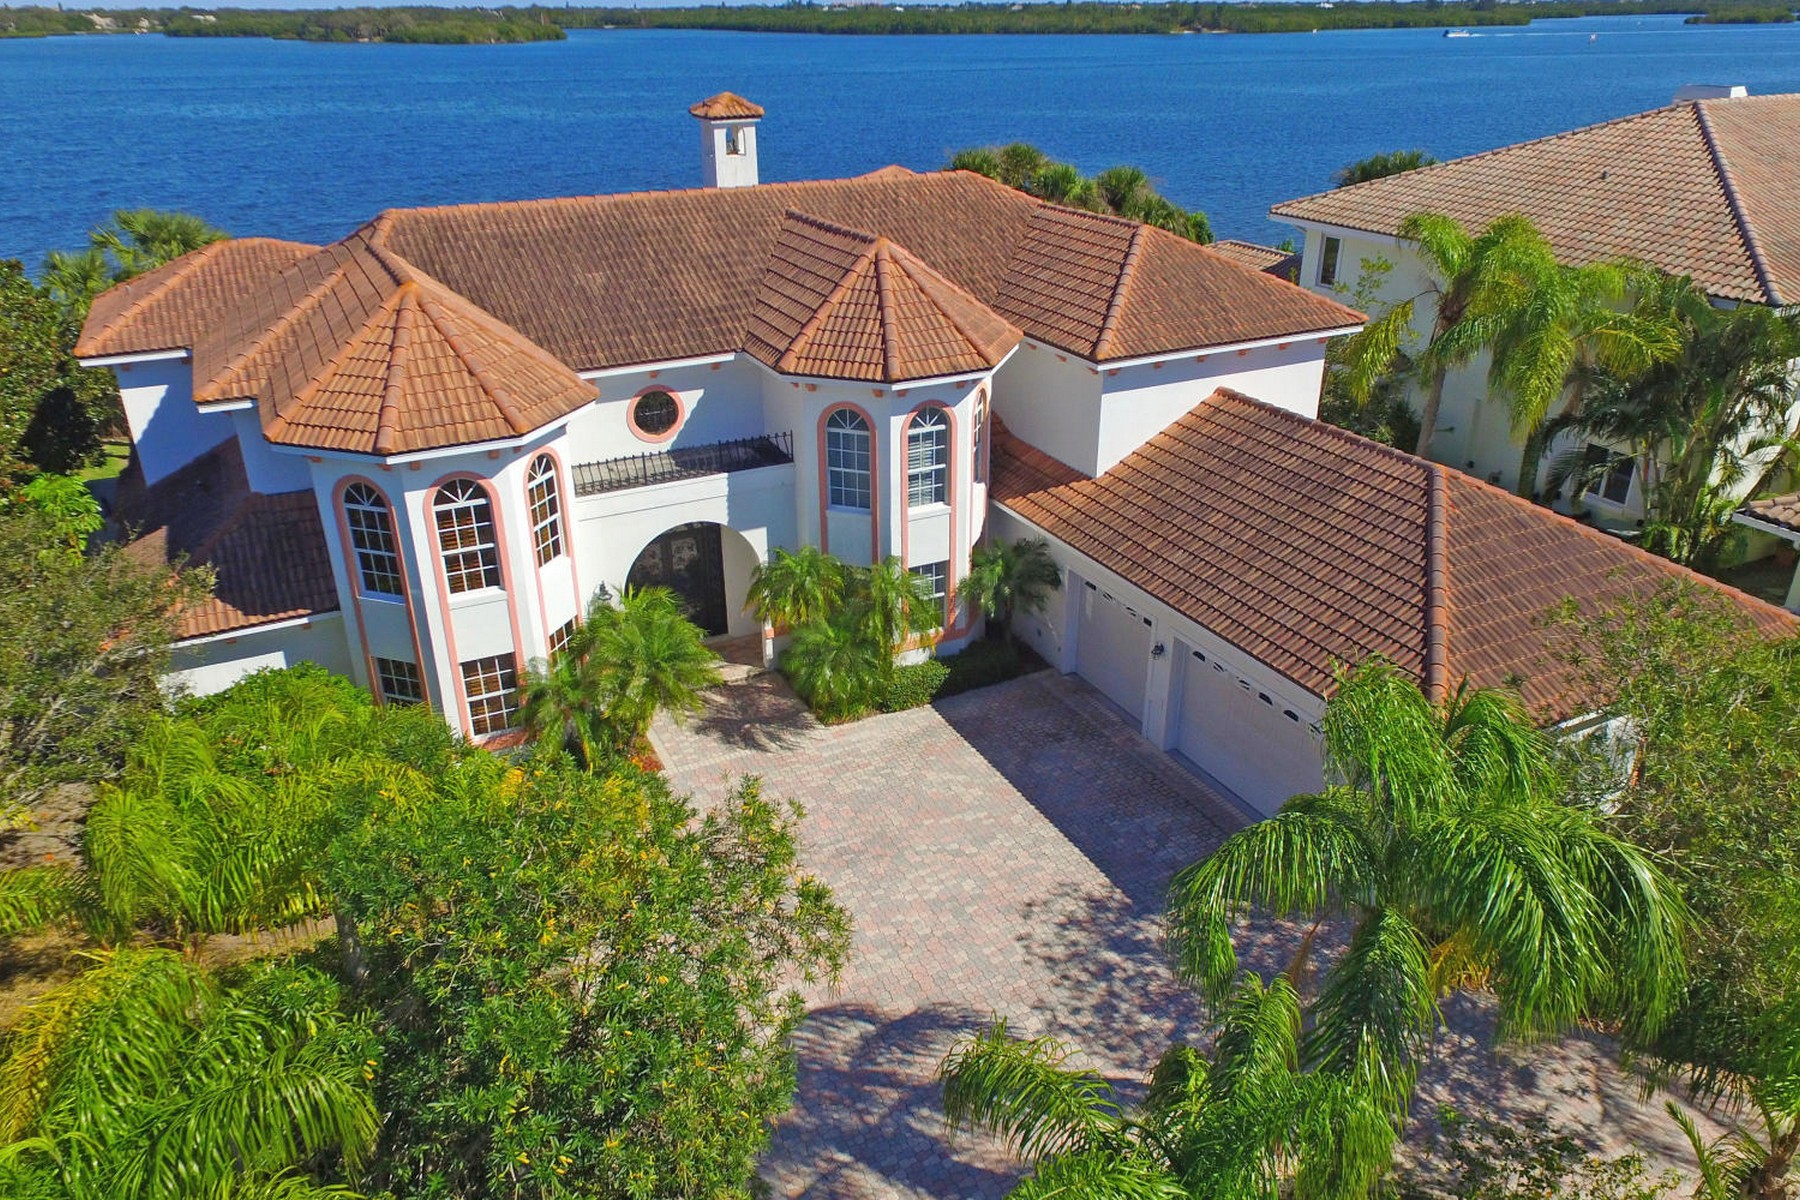 Single Family Home for Sale at Magnificent Riverfront Estate with 6,464 Square Feet 5210 Saint Andrews Island Dr Vero Beach, Florida 32967 United States